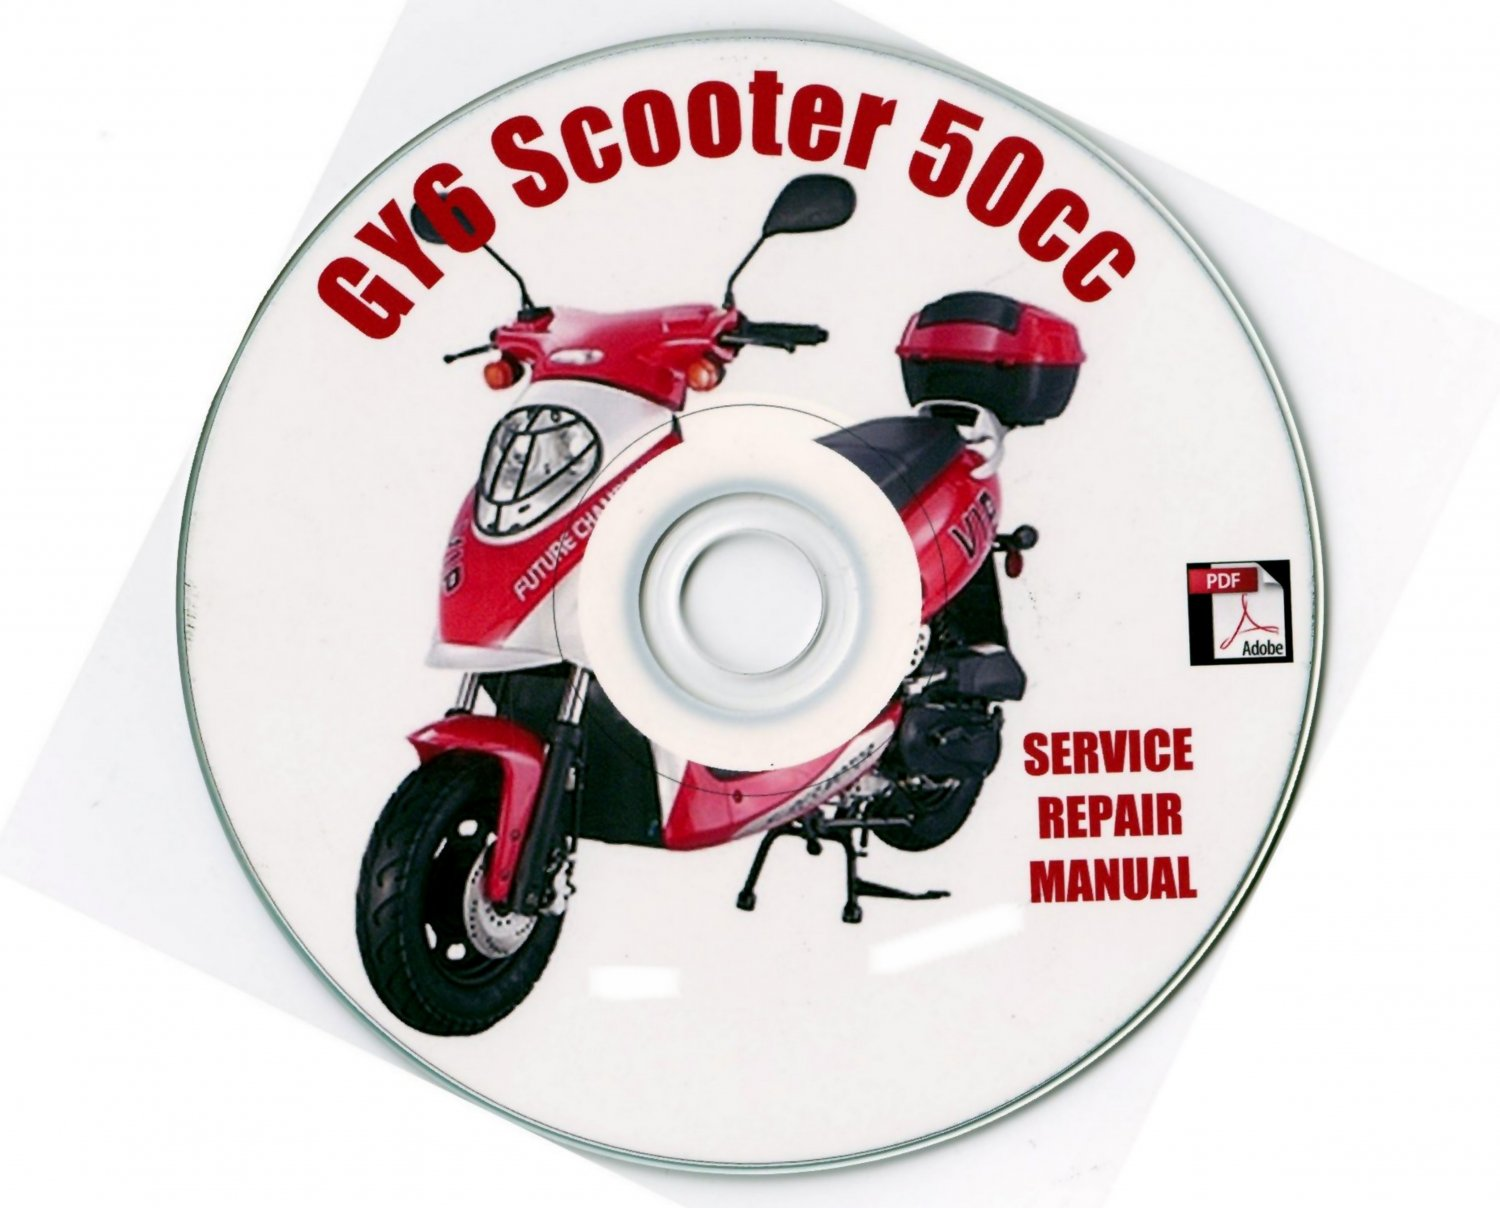 2011 Vip Scooter Wiring Diagram Library Wire Tao Future Champion Schematics Rh Enr Green Com 49 Cc Mopeds Moped